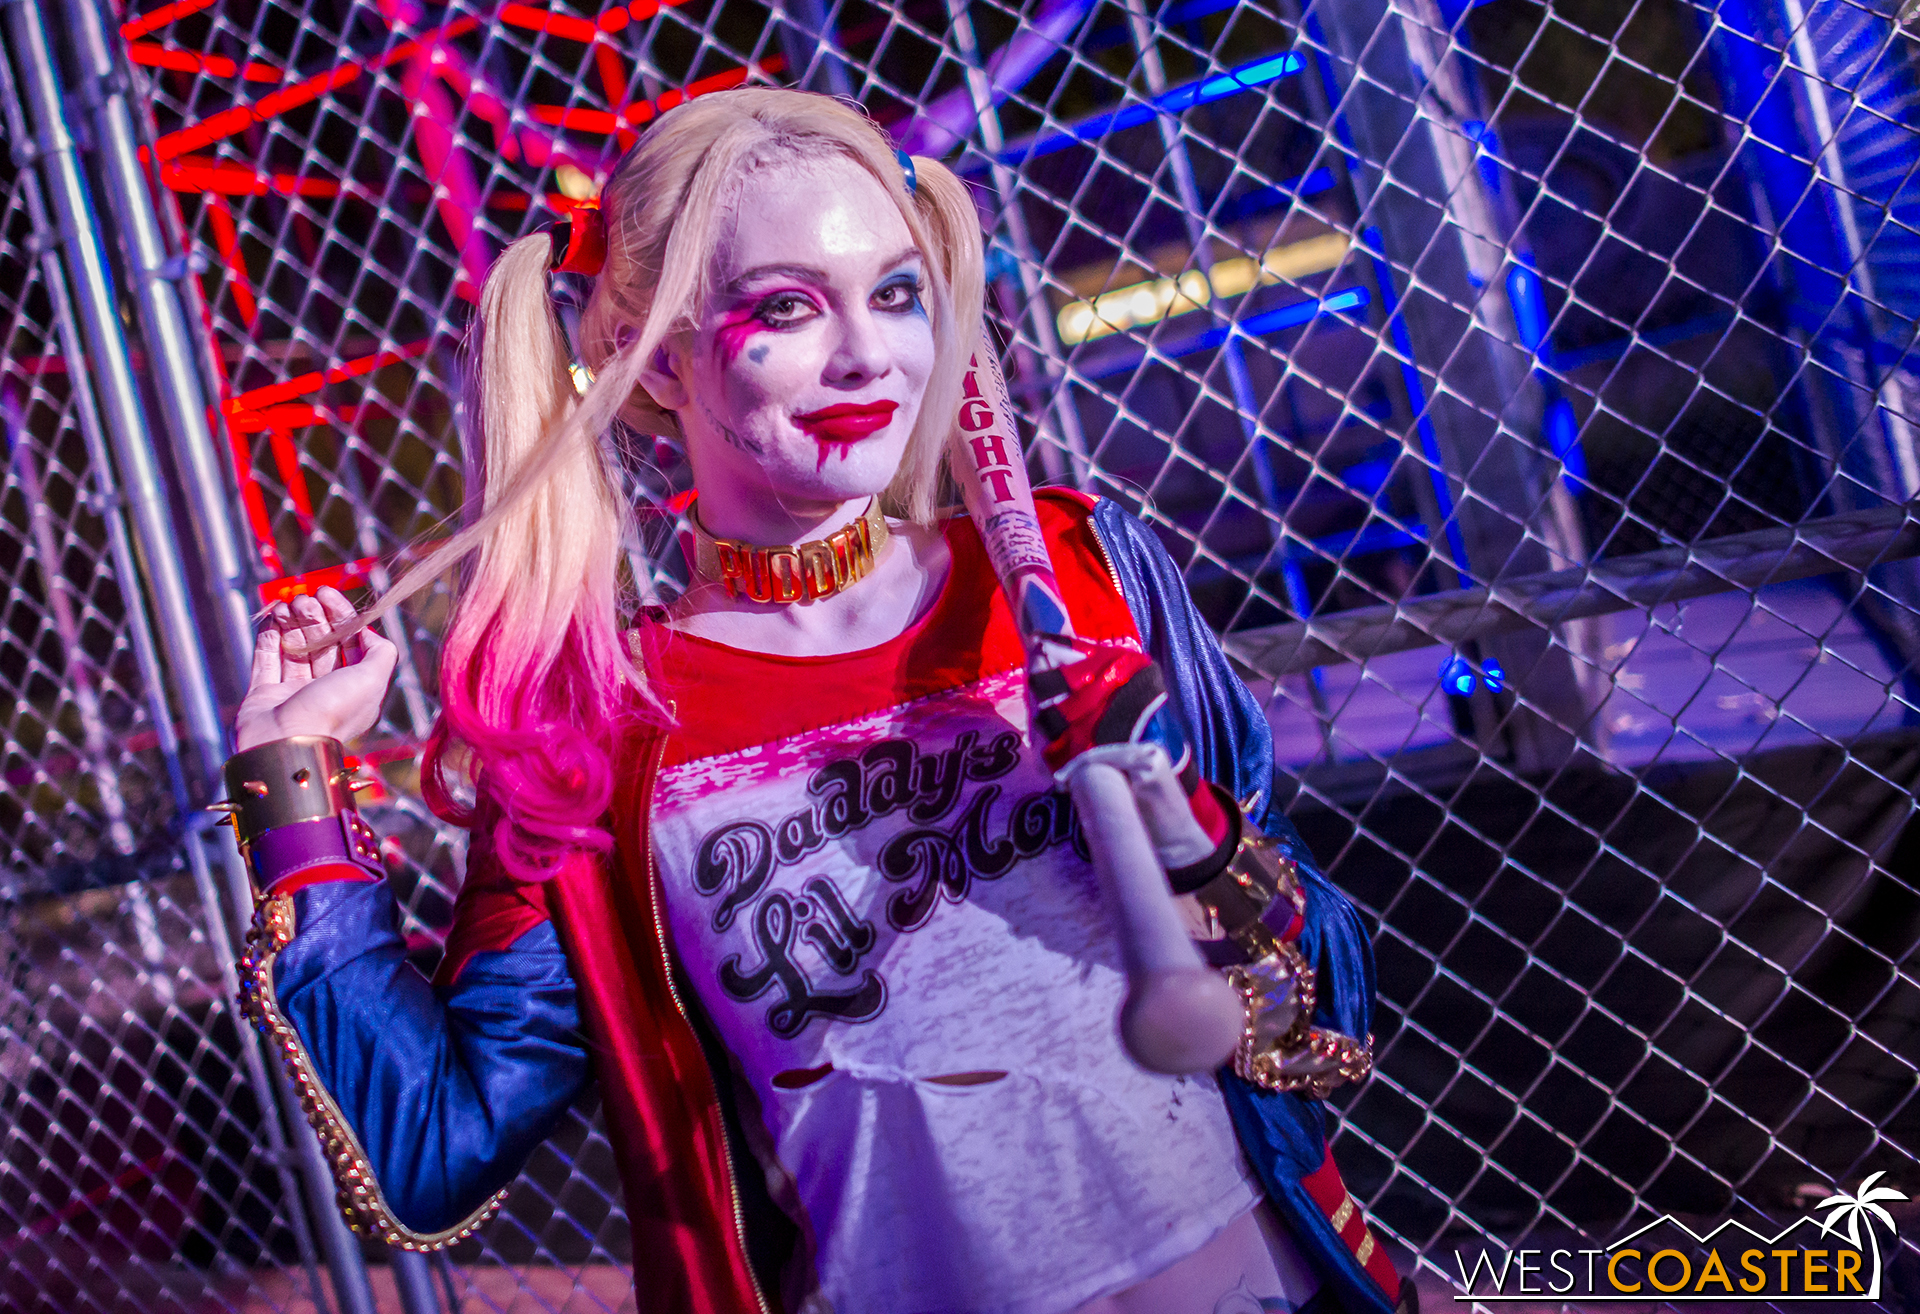 But for all you Harley Quinn fans, here you go.